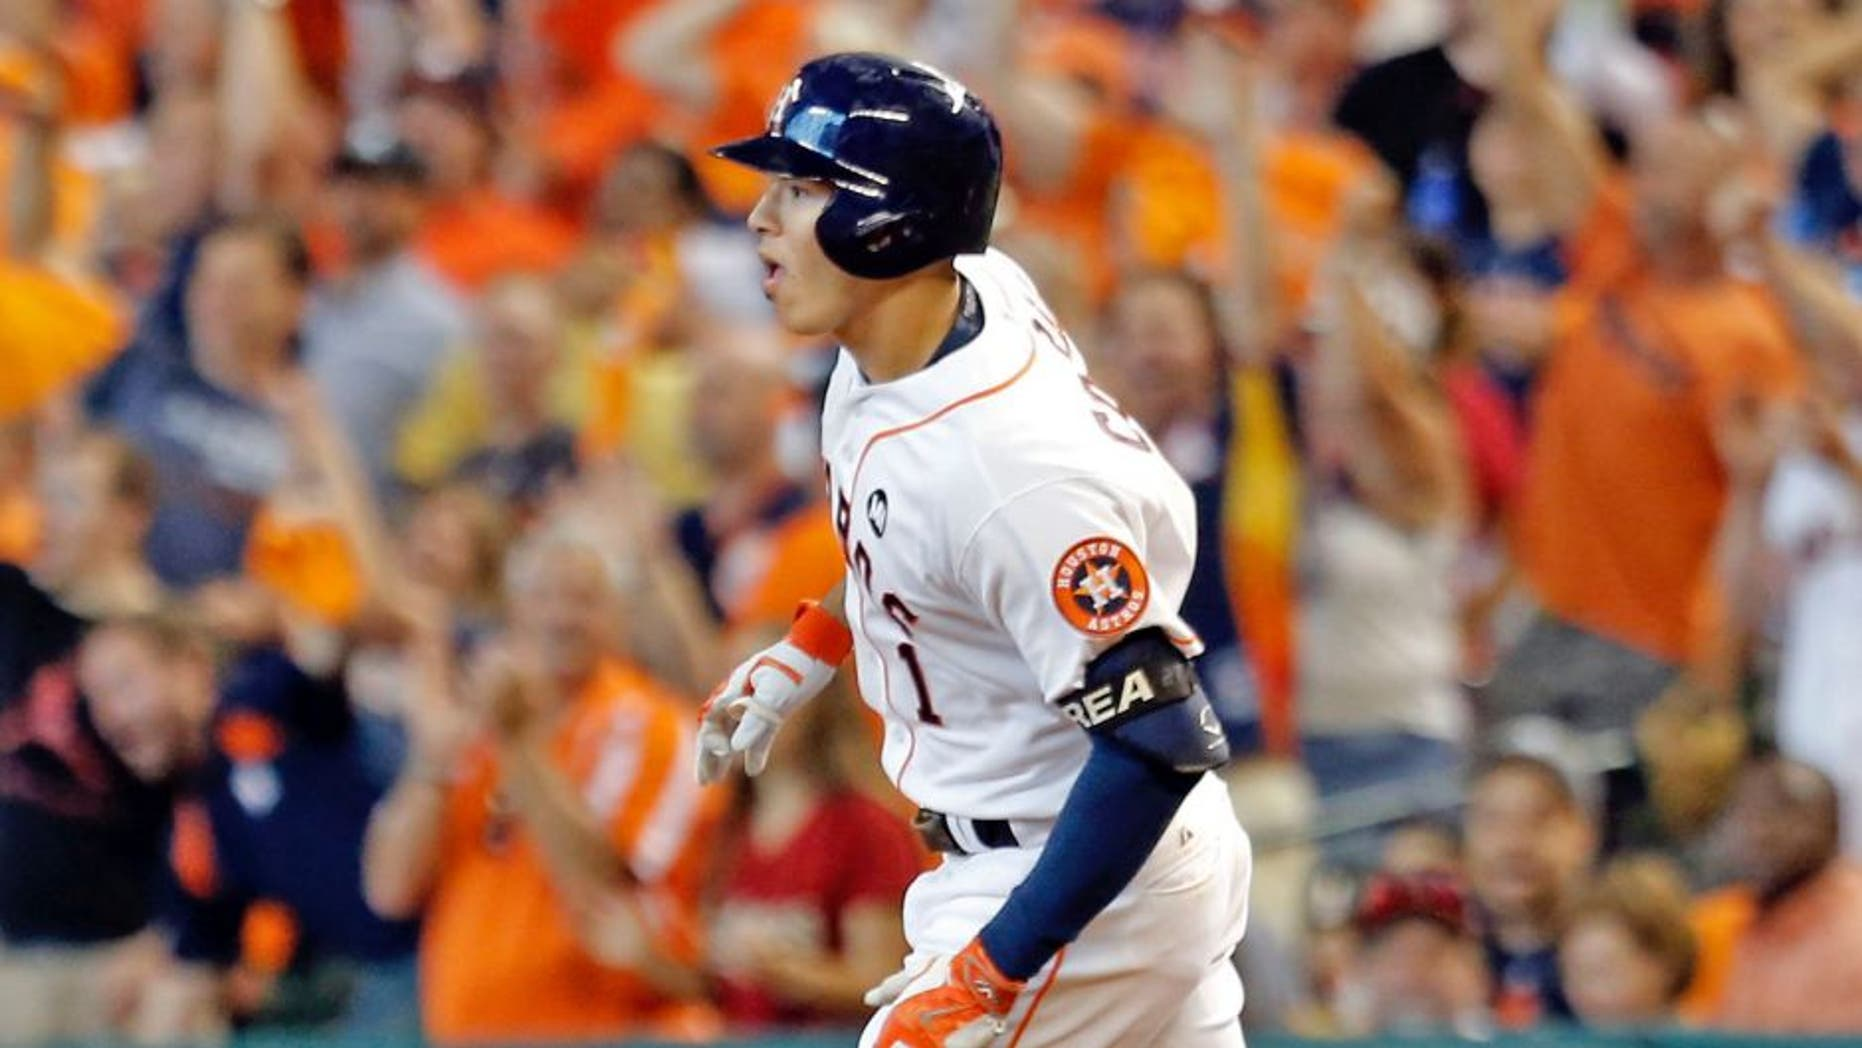 Oct 12, 2015; Houston, TX, USA; Houston Astros shortstop Carlos Correa (1) rounds the bases after hitting a solo home run against the Kansas City Royals during the third inning in game four of the ALDS at Minute Maid Park. Mandatory Credit: Thomas B. Shea-USA TODAY Sports